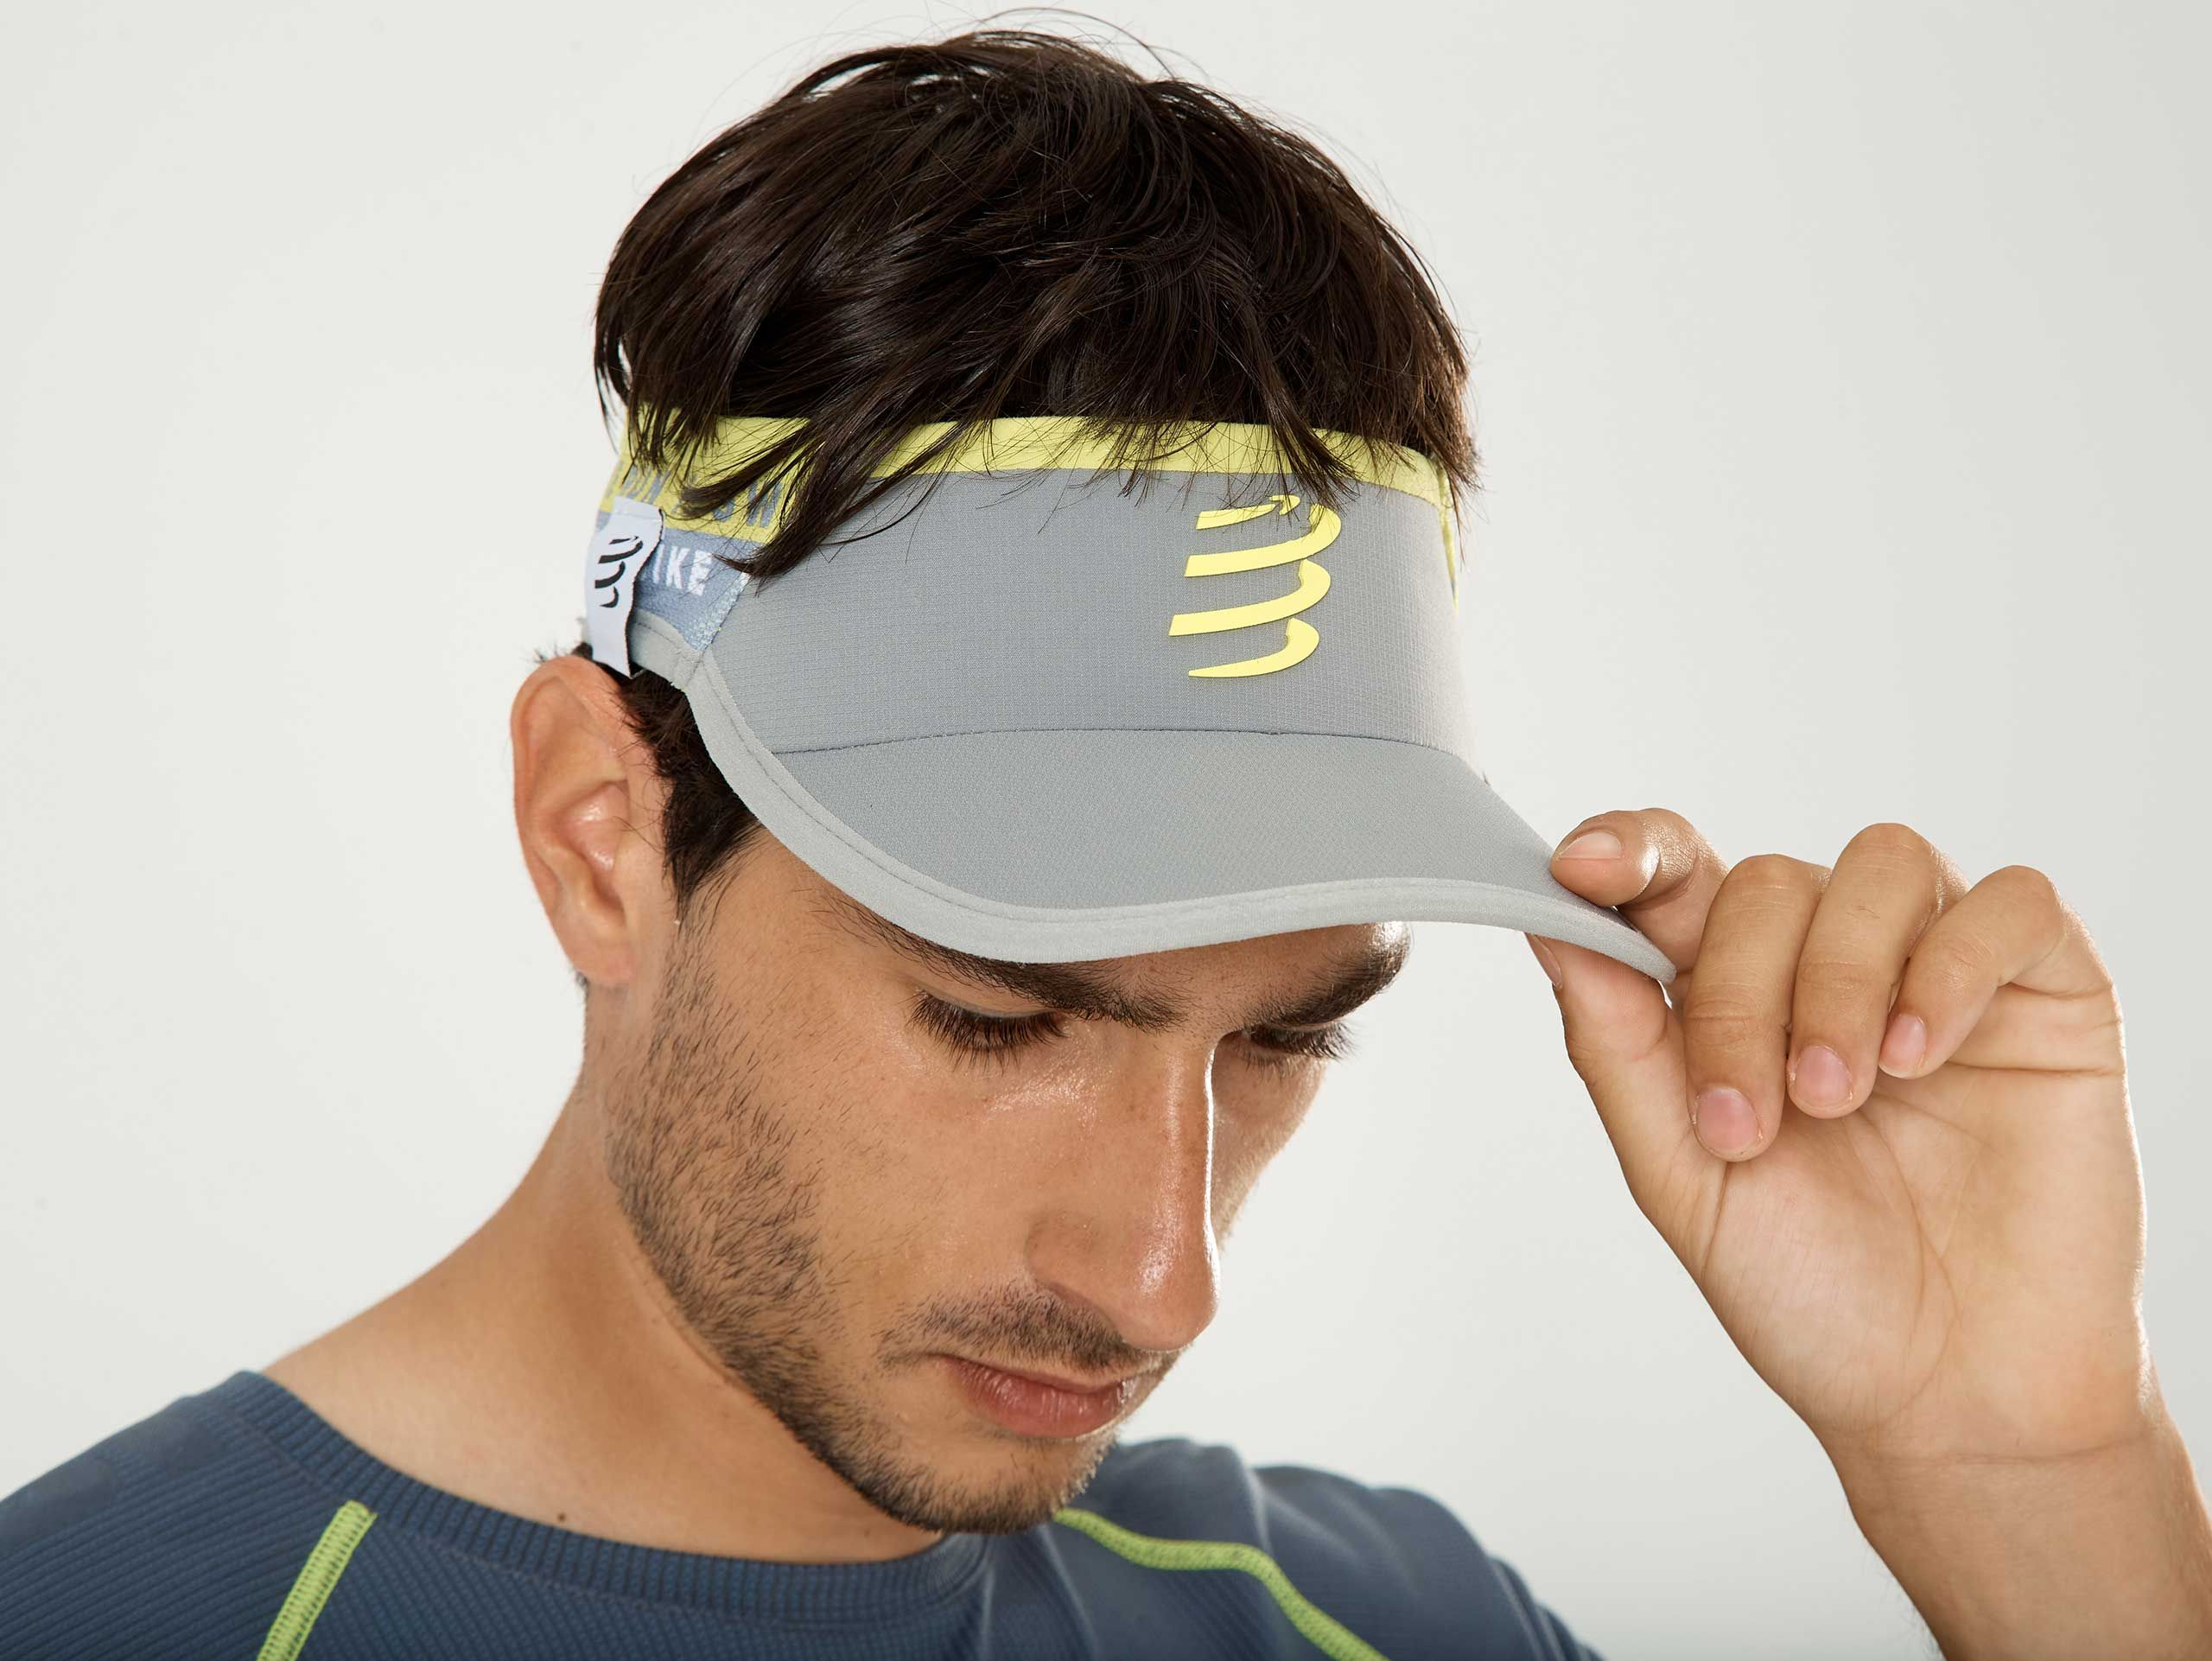 Visor Ultralight - Born To SwimBikeRun 2020